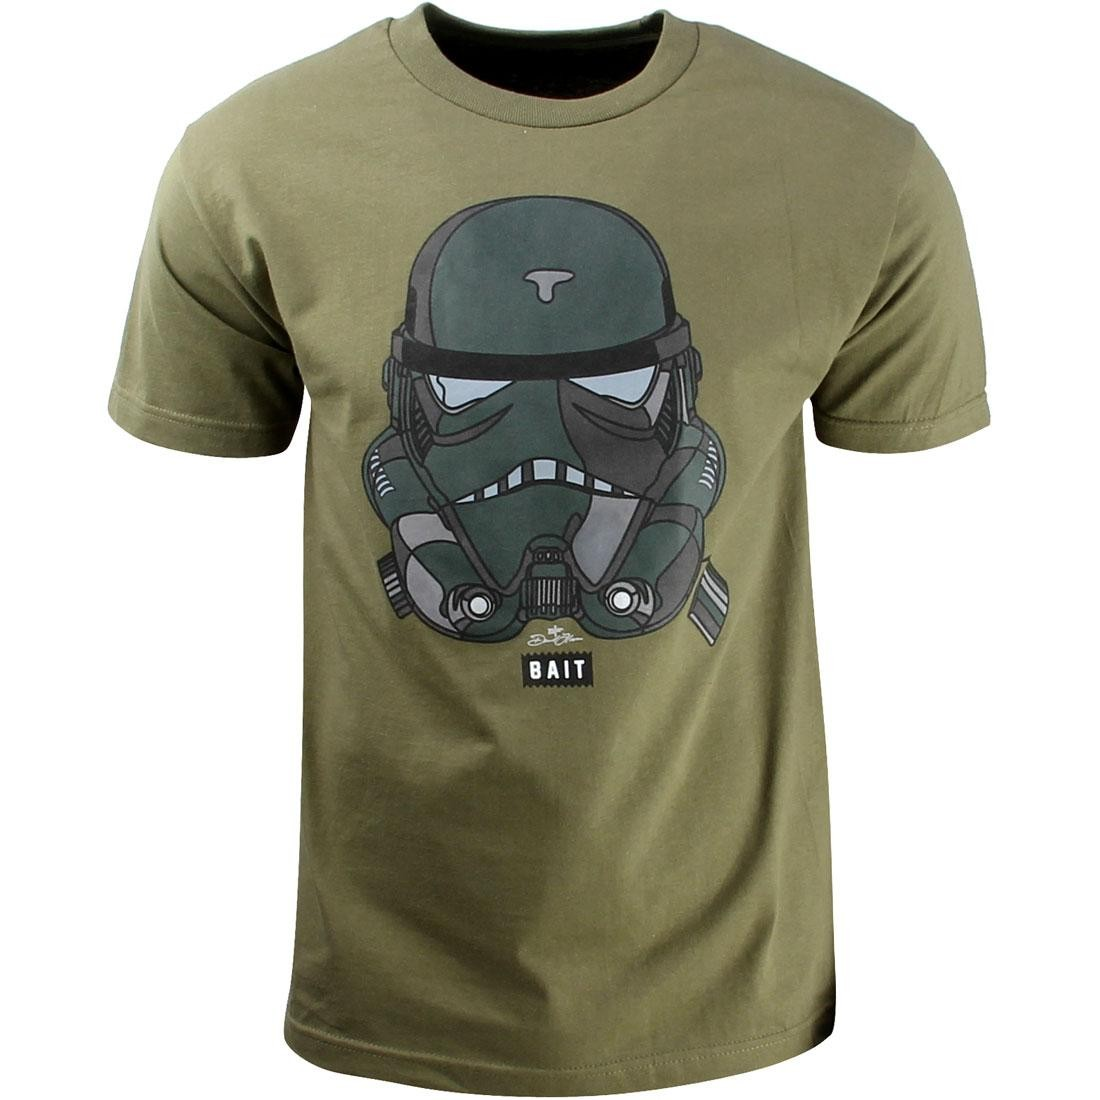 BAIT x David Flores Trooper Tee (green / military)